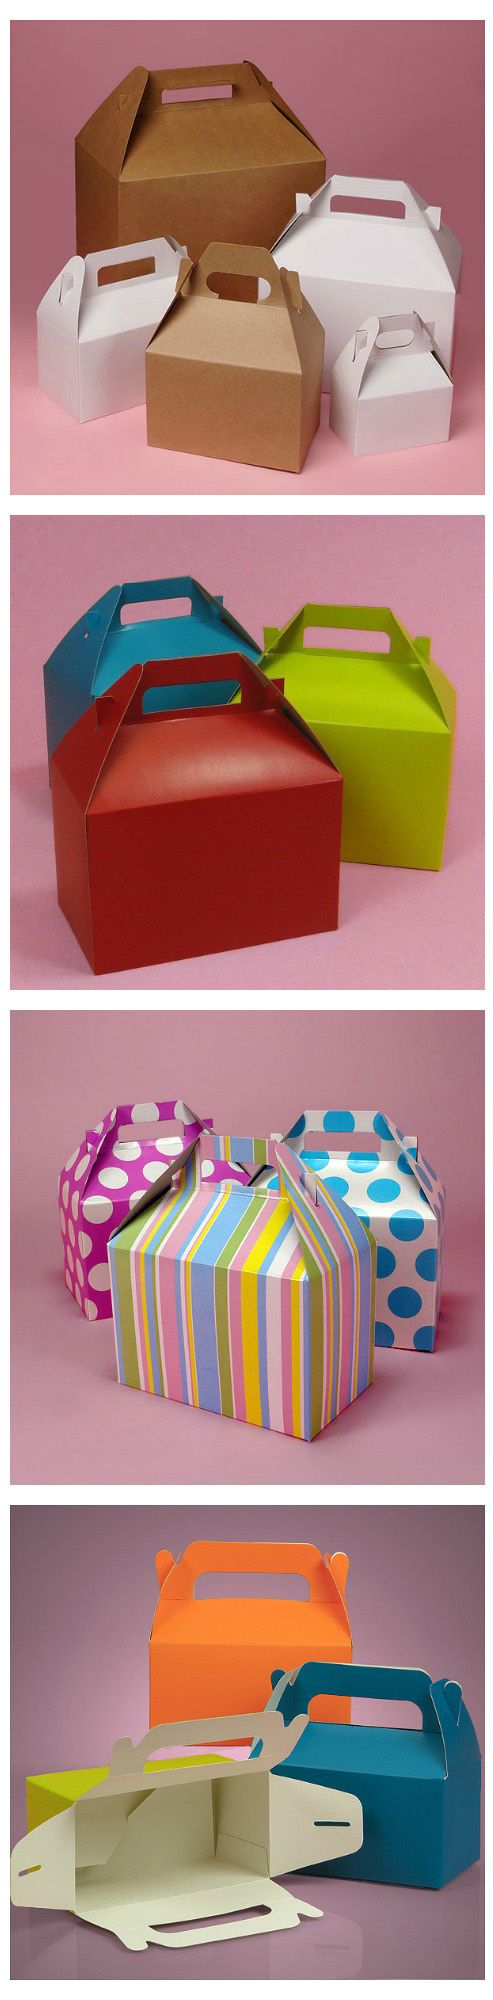 Gable gift boxes are great to use for party favors and presents because they have handles, which make them easy to carry. These gift boxes look a lot like happy meal boxes too! #gableboxes